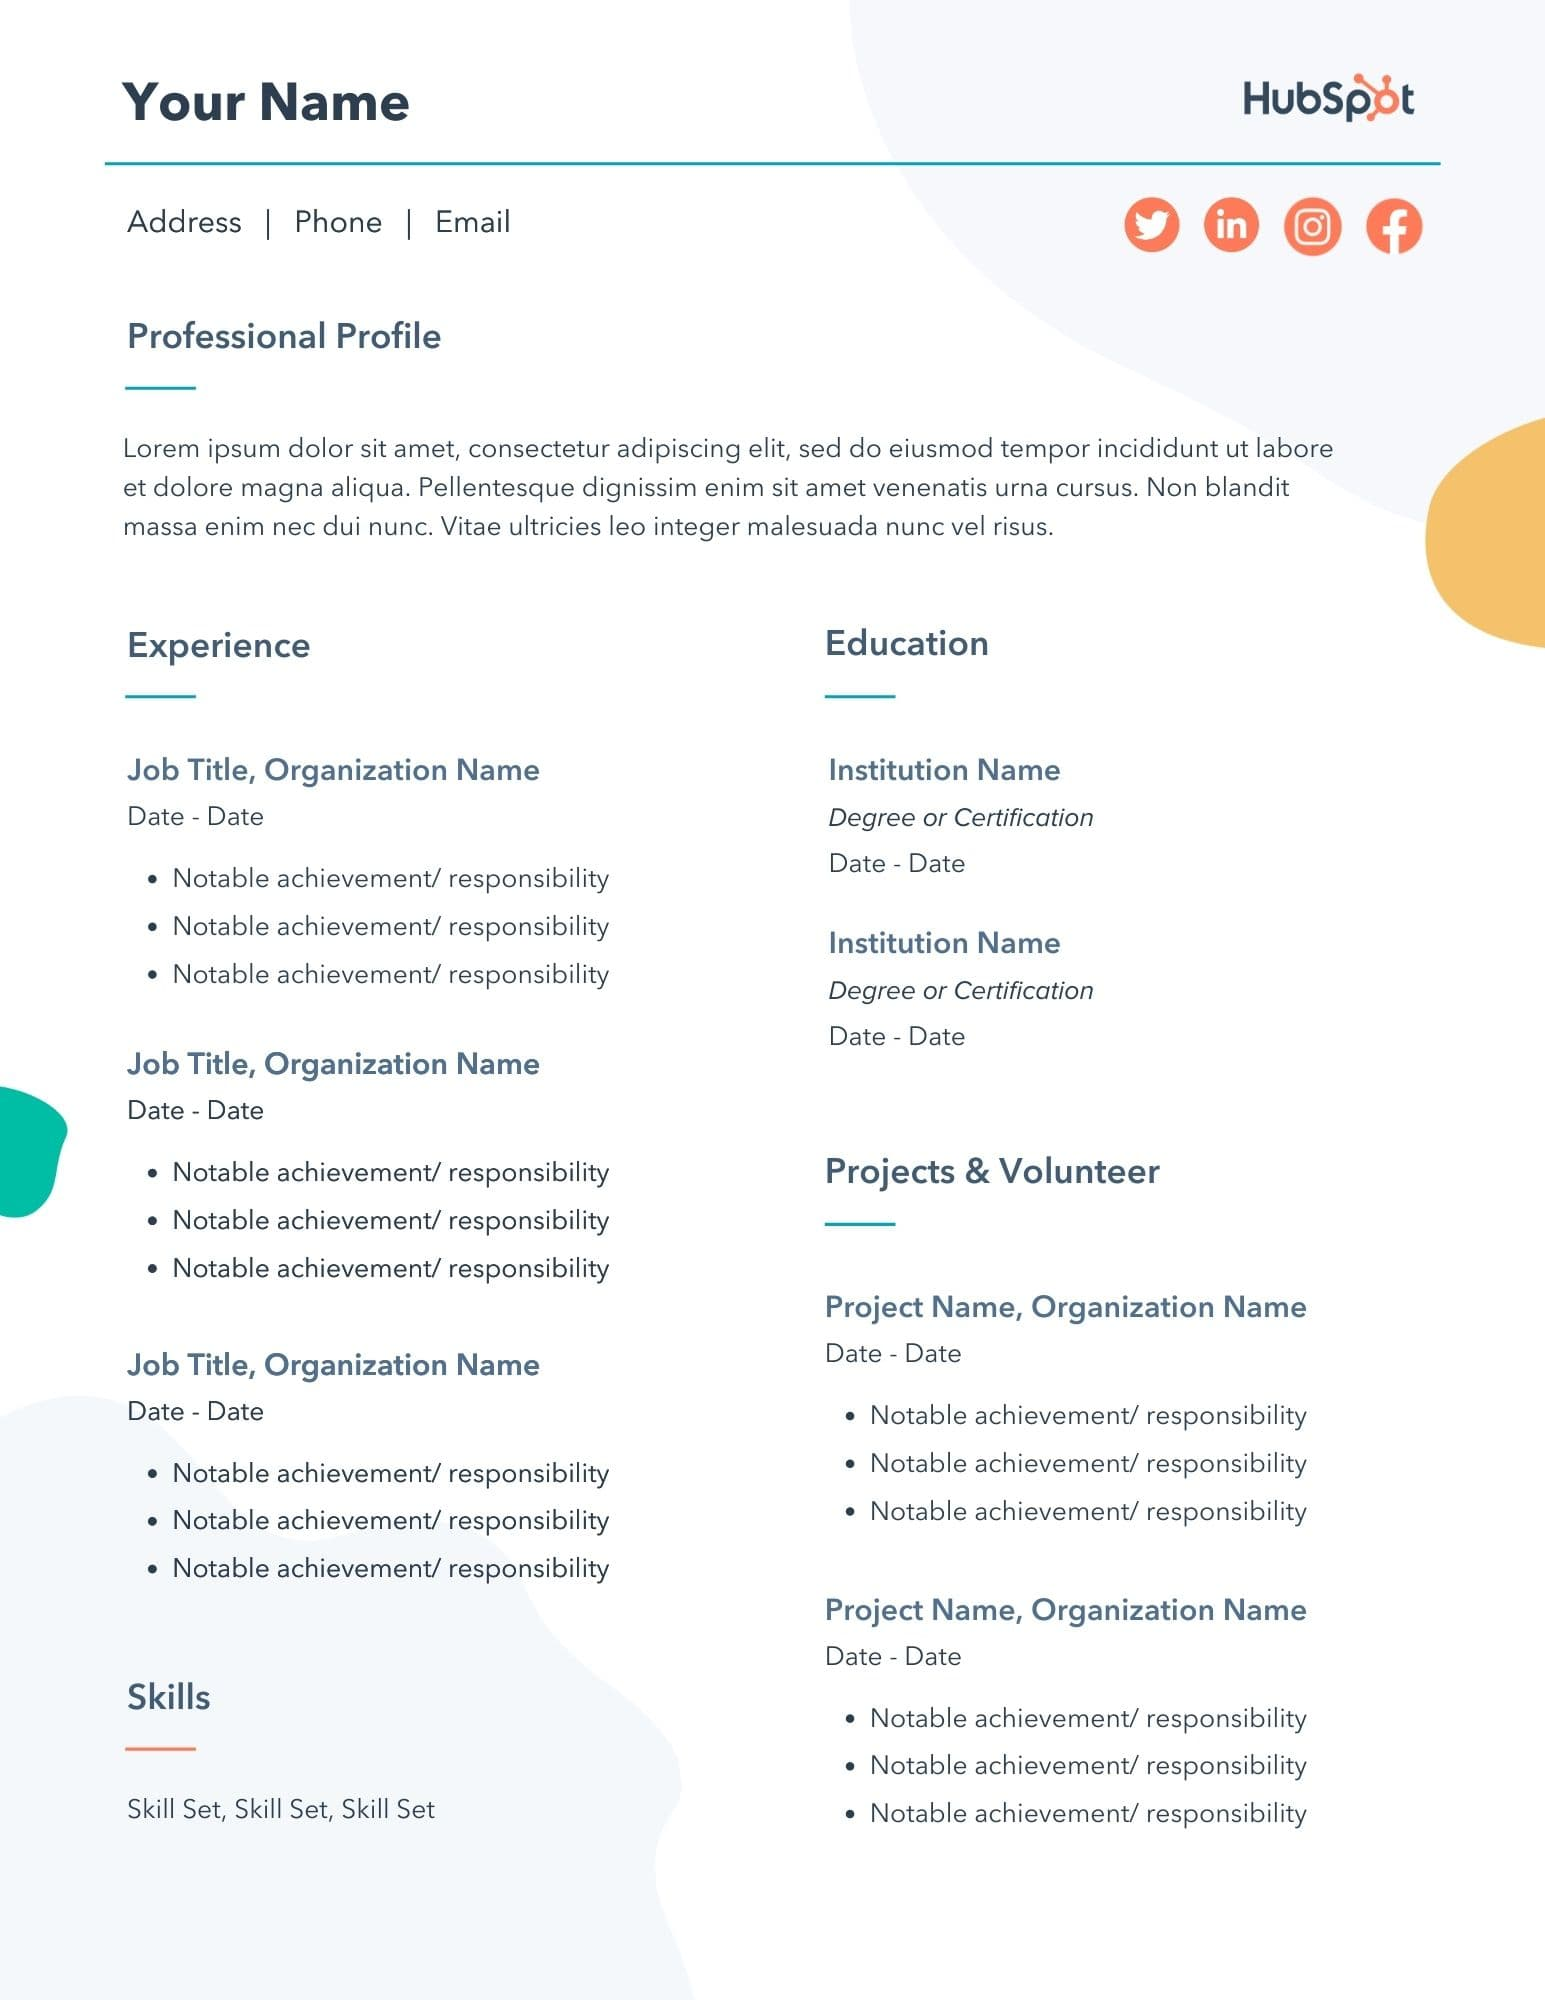 free resume templates for microsoft word to make your own professional headers template Resume Professional Resume Headers